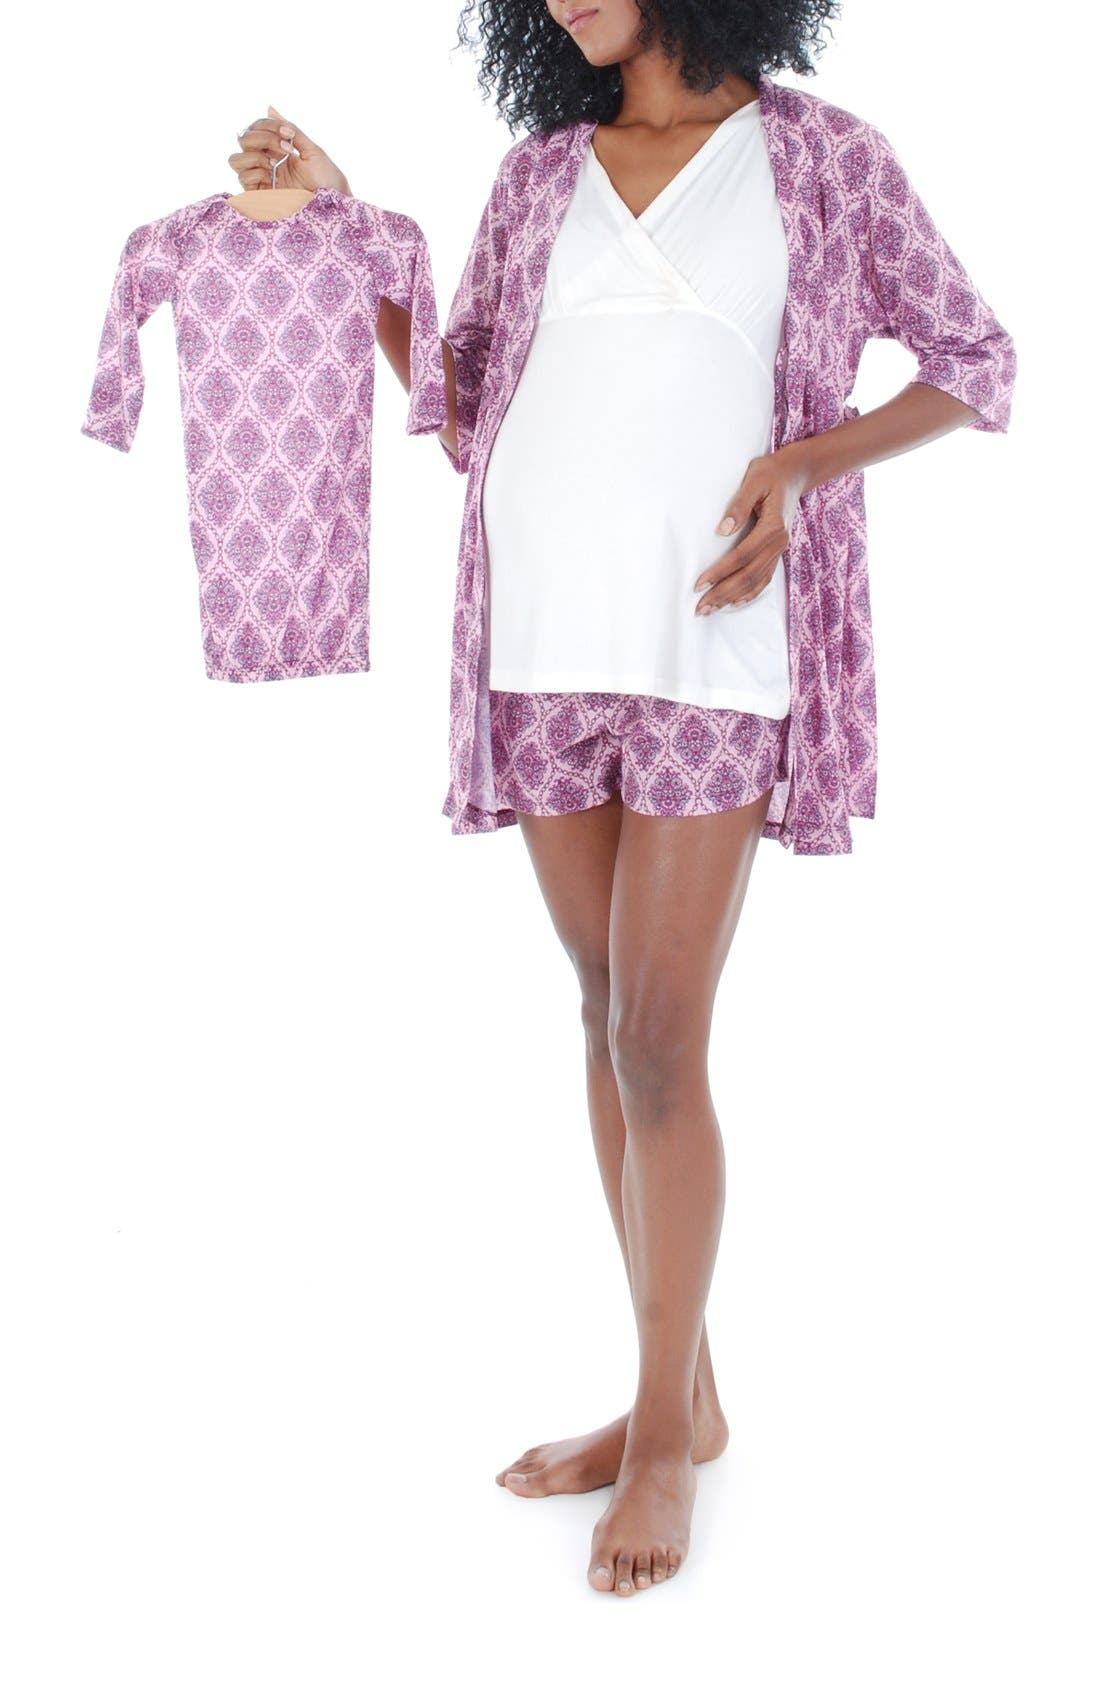 'Daphne - During & After' 5-Piece Maternity Sleepwear Set,                             Main thumbnail 1, color,                             500